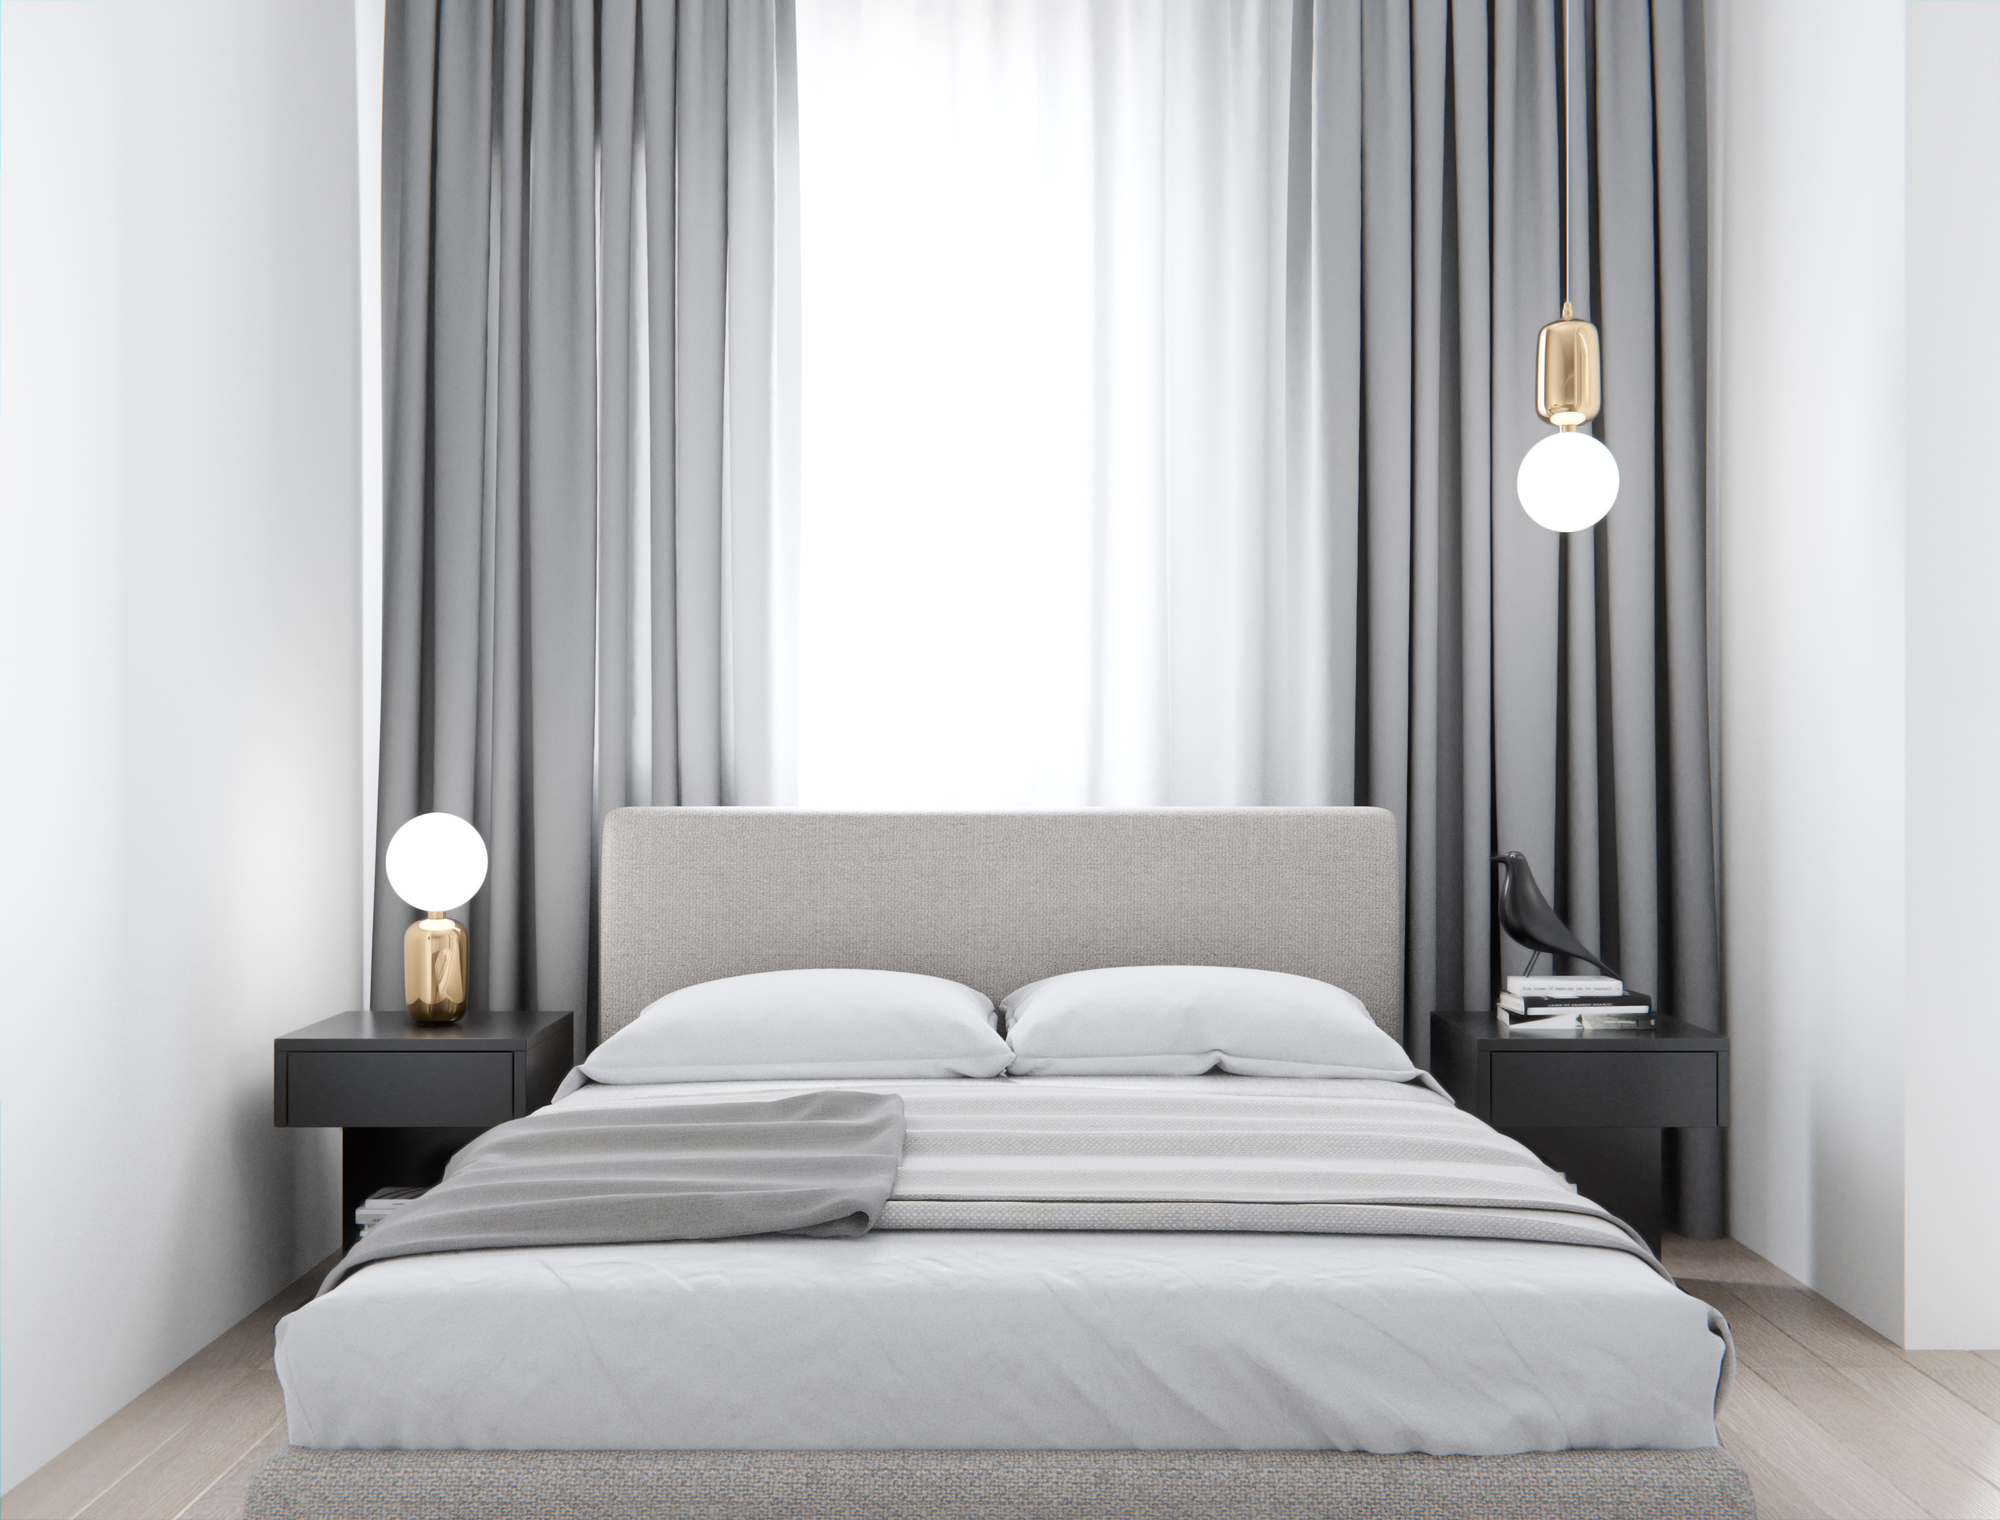 Bedroom Ideas 52 Modern Design Ideas For Your Bedroom The Luxpad with Modern Design For Bedroom